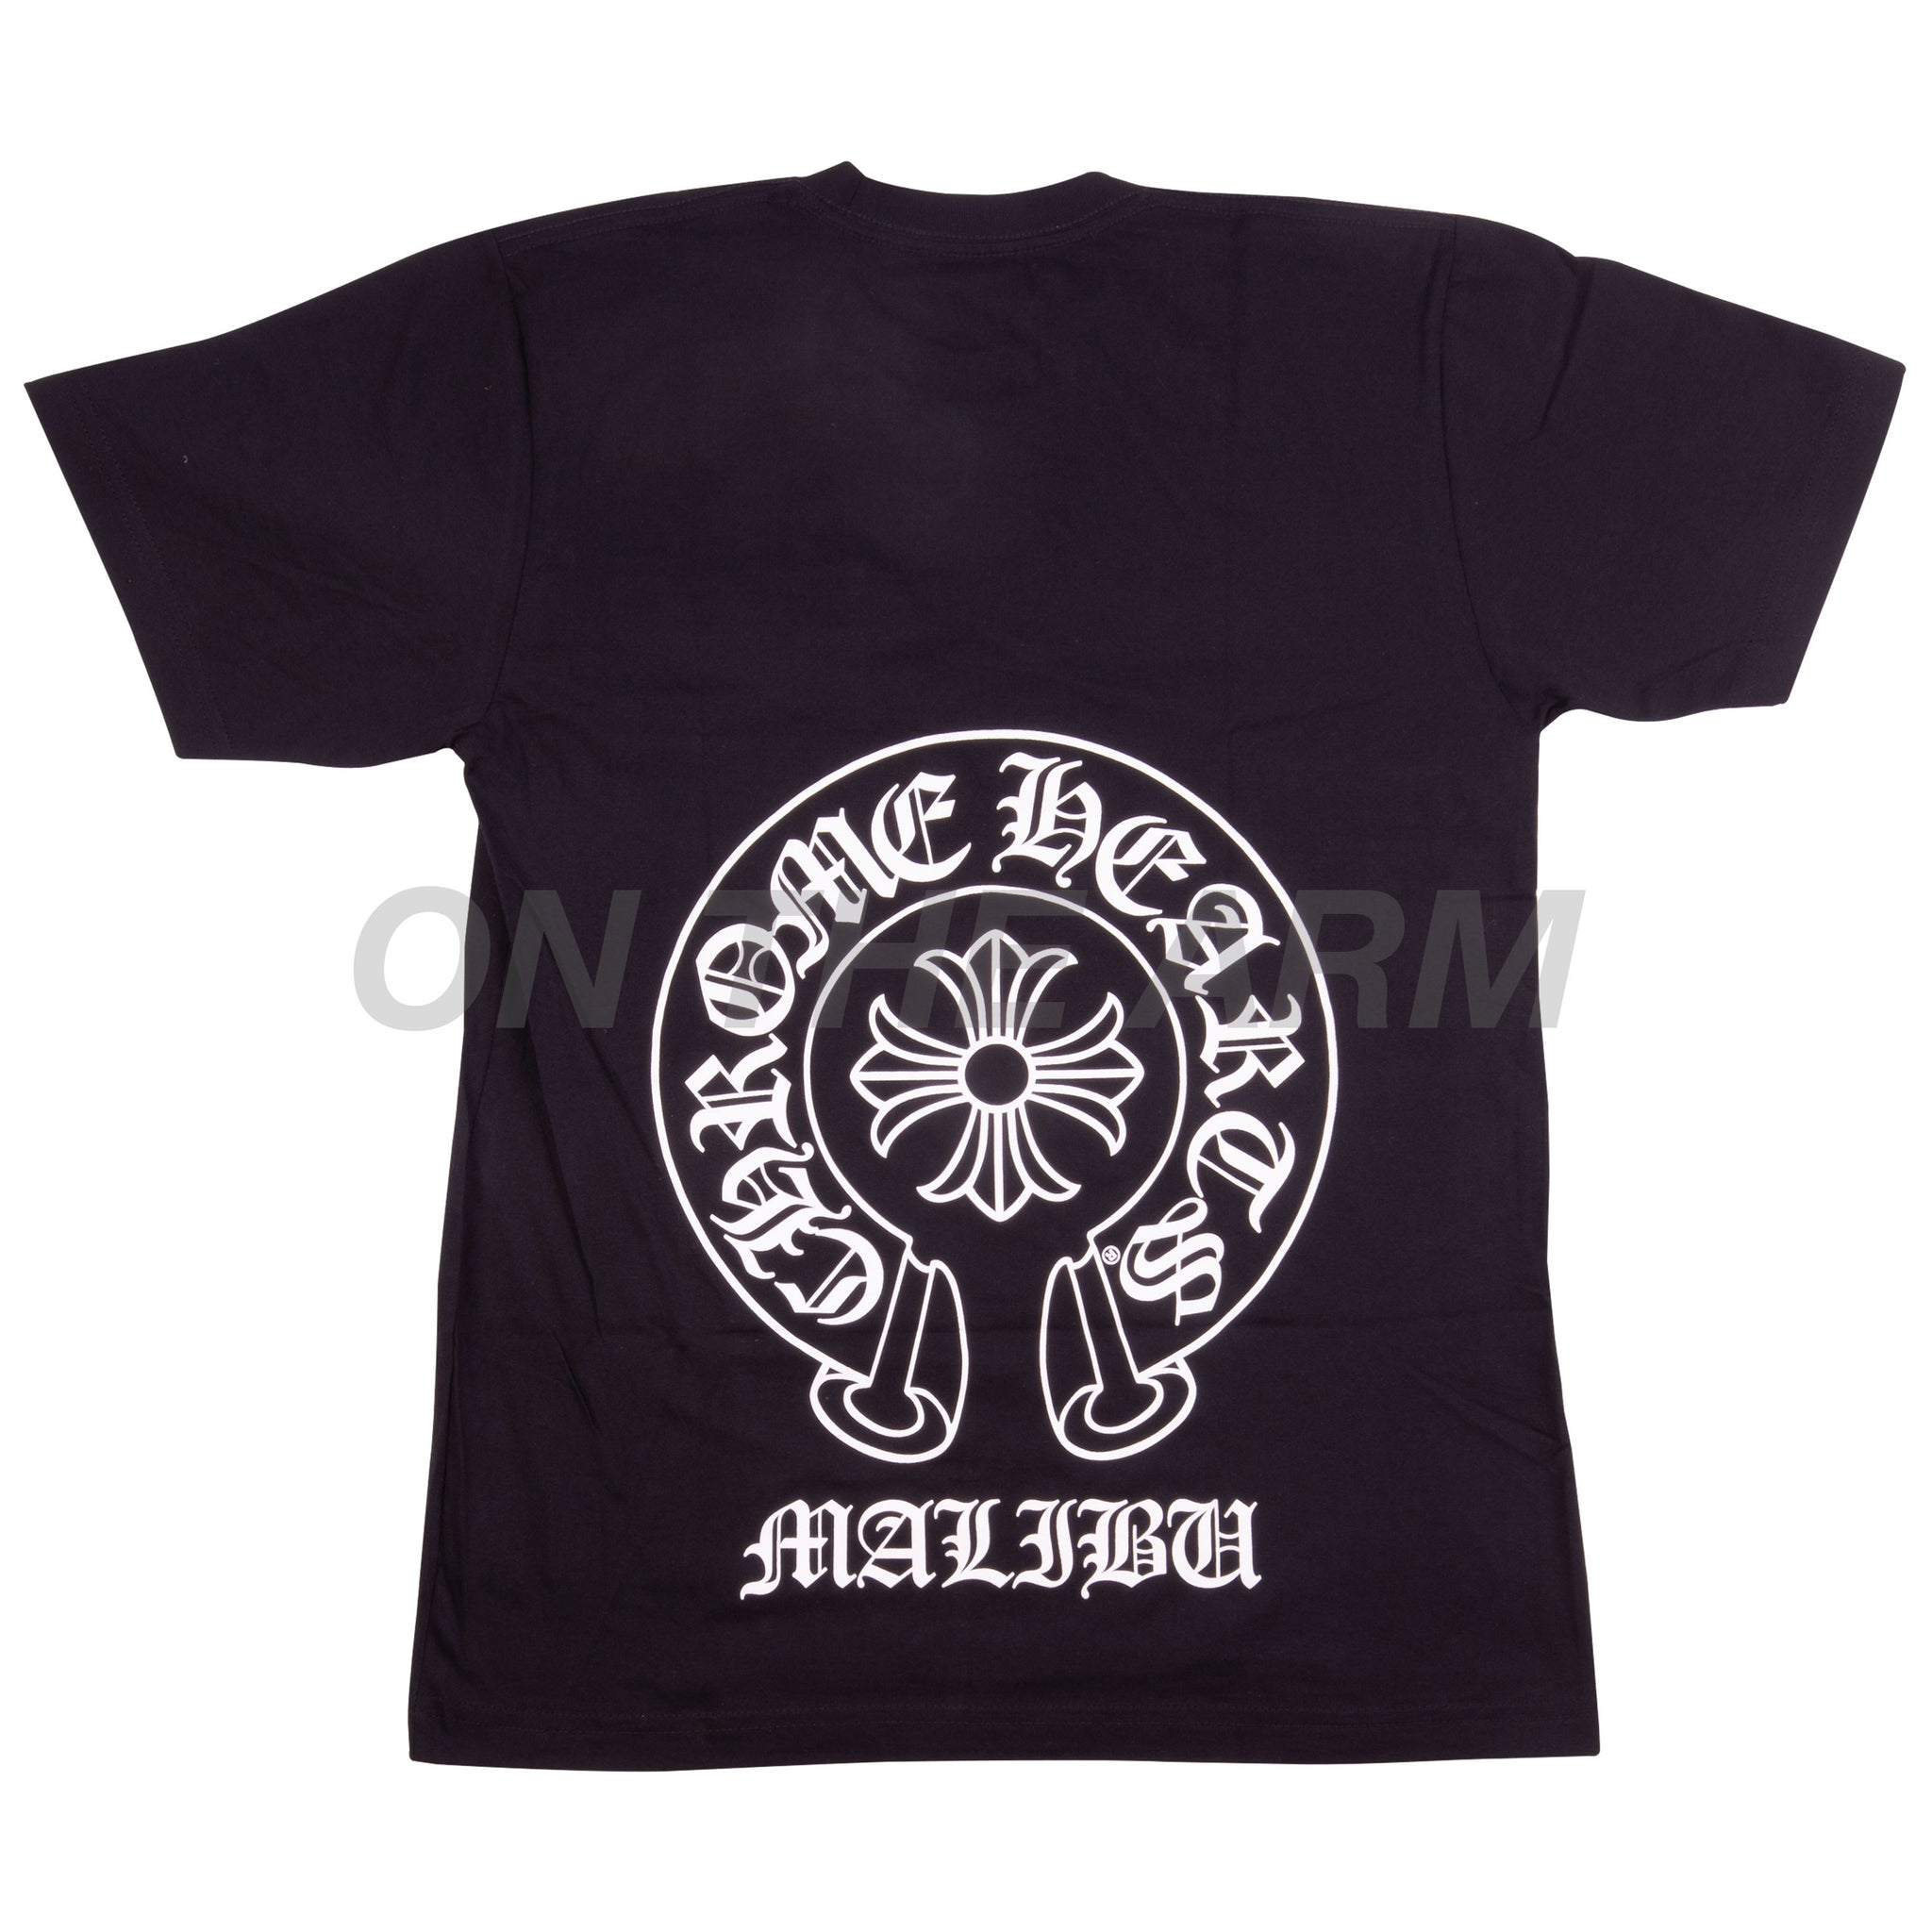 Chrome Hearts Black Malibu Pocket Tee